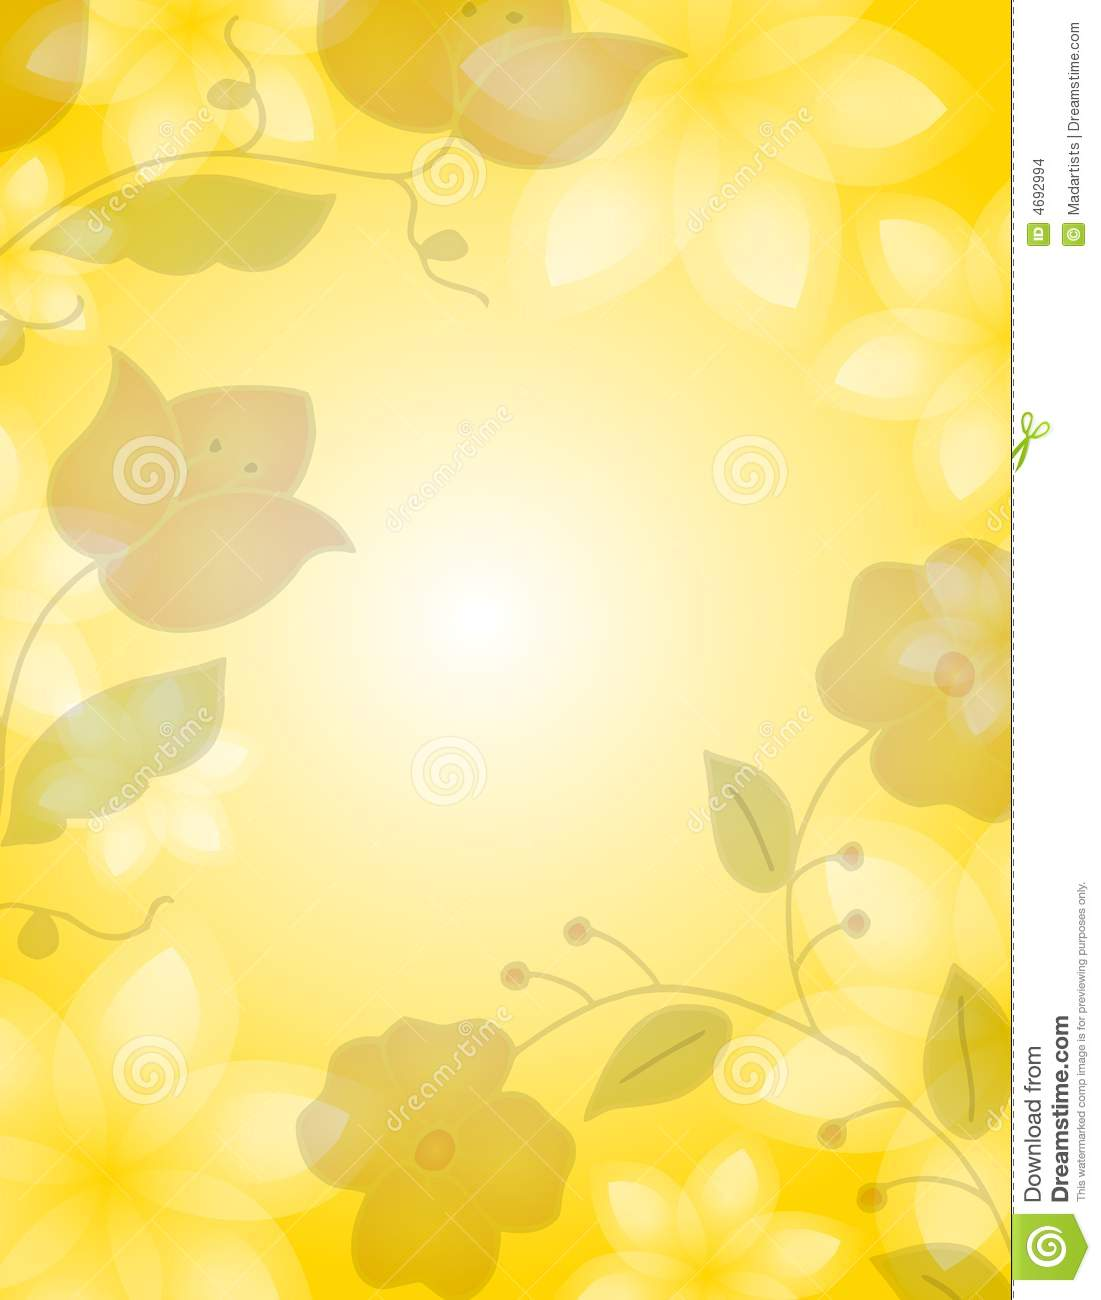 light yellow floral background stock images image 4692994